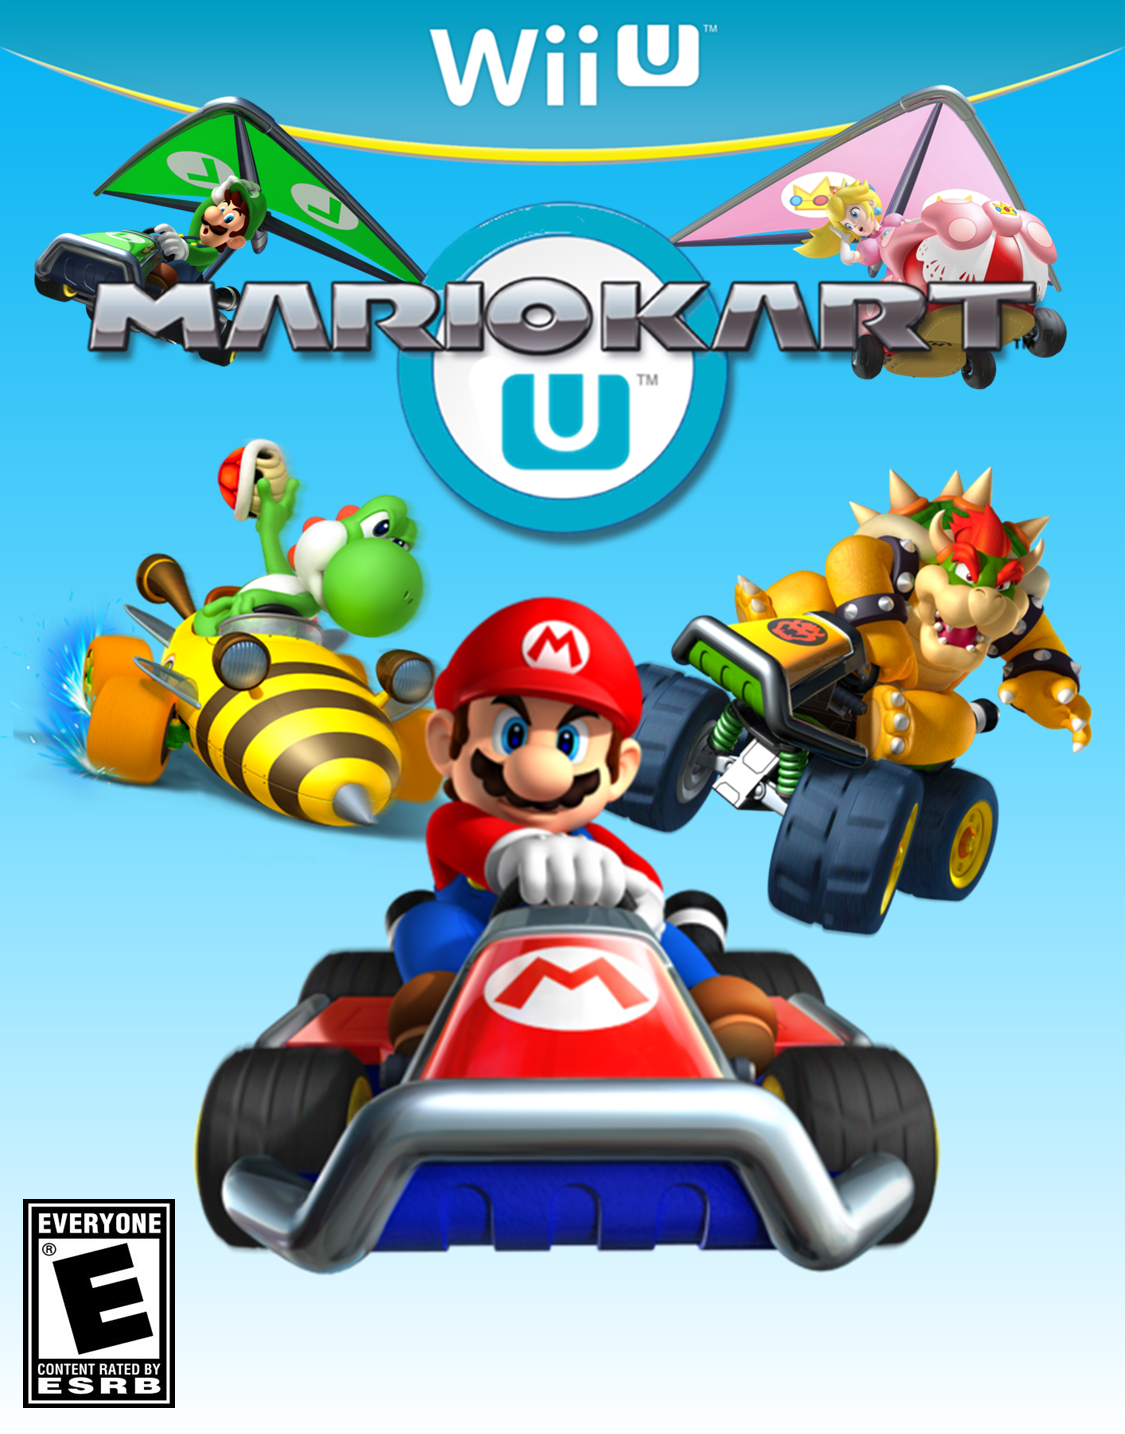 Mario Kart U - Fantendo, the Video Game Fanon Wiki